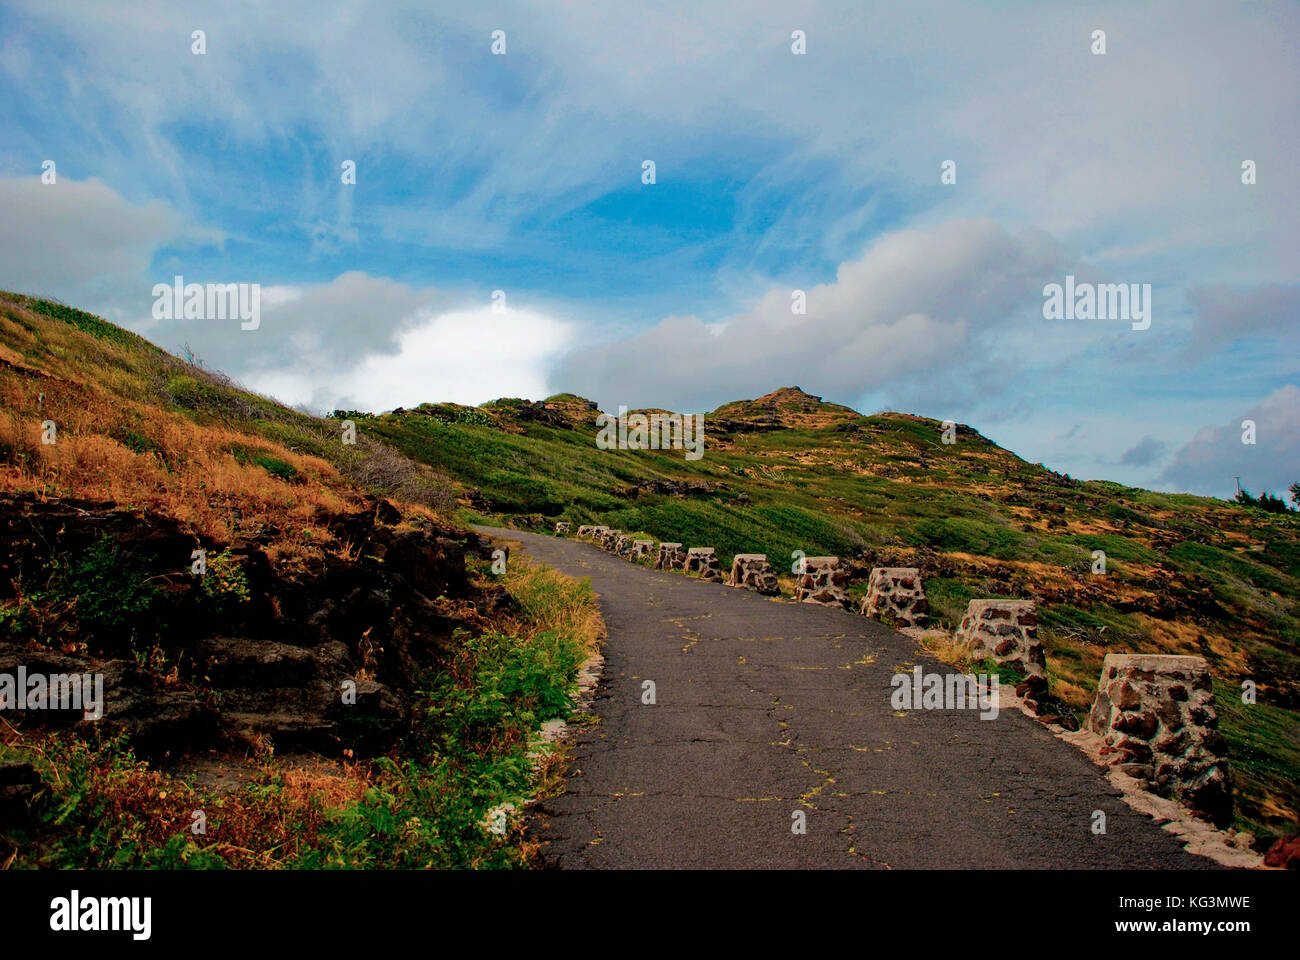 Trail to Makapu'u Point - Oahu, Hawaii - Stock Image